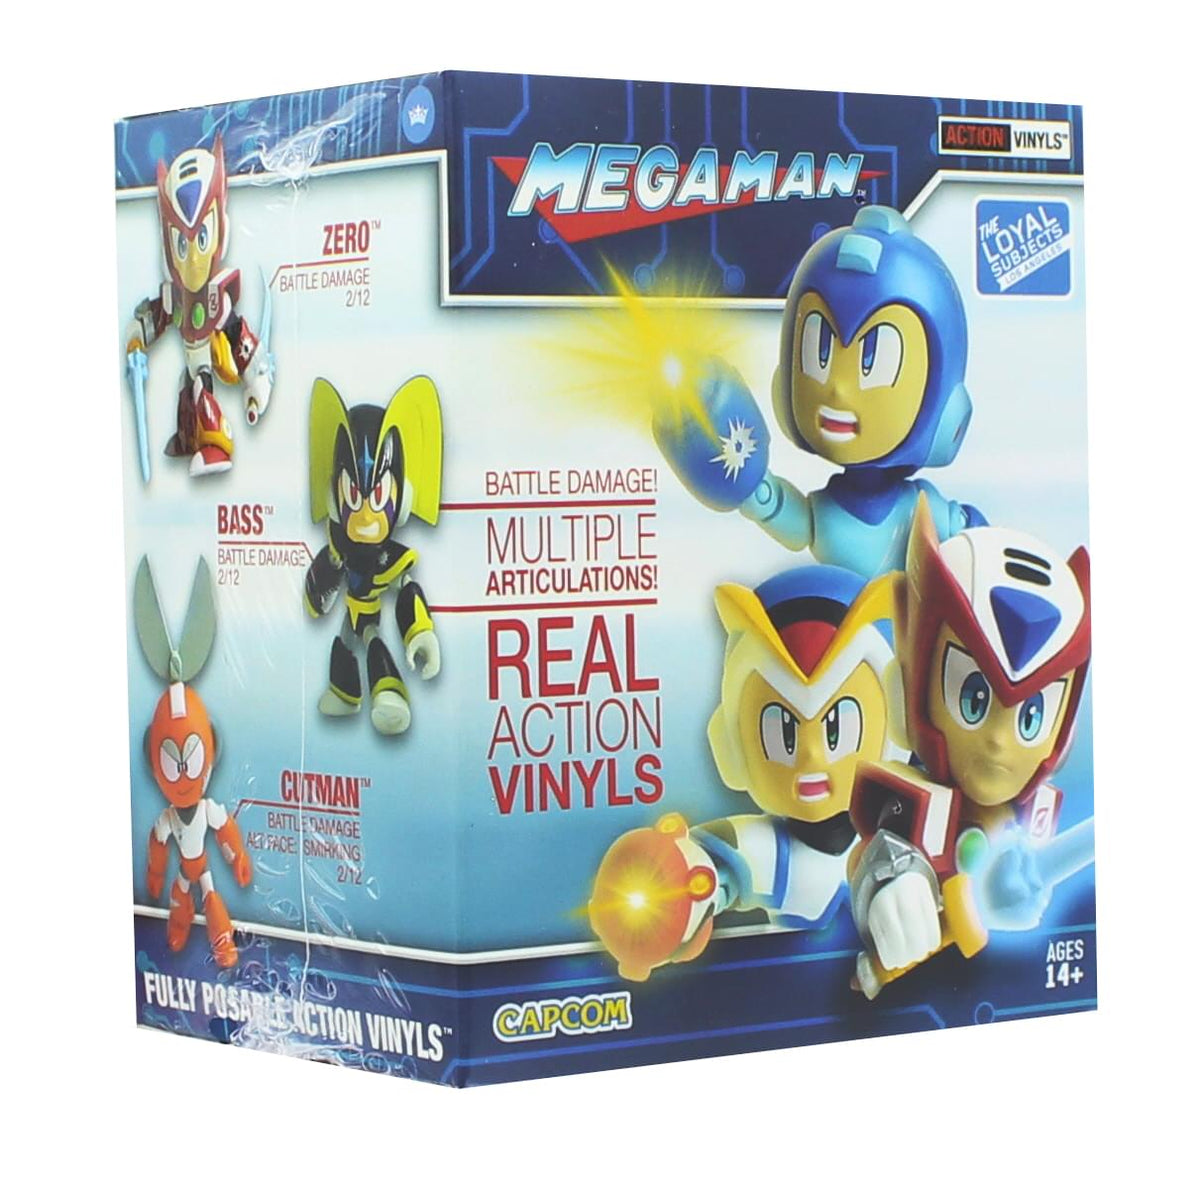 Mega Man Blind Box 3.25 Inch Battle Damaged Action Vinyl - One Random